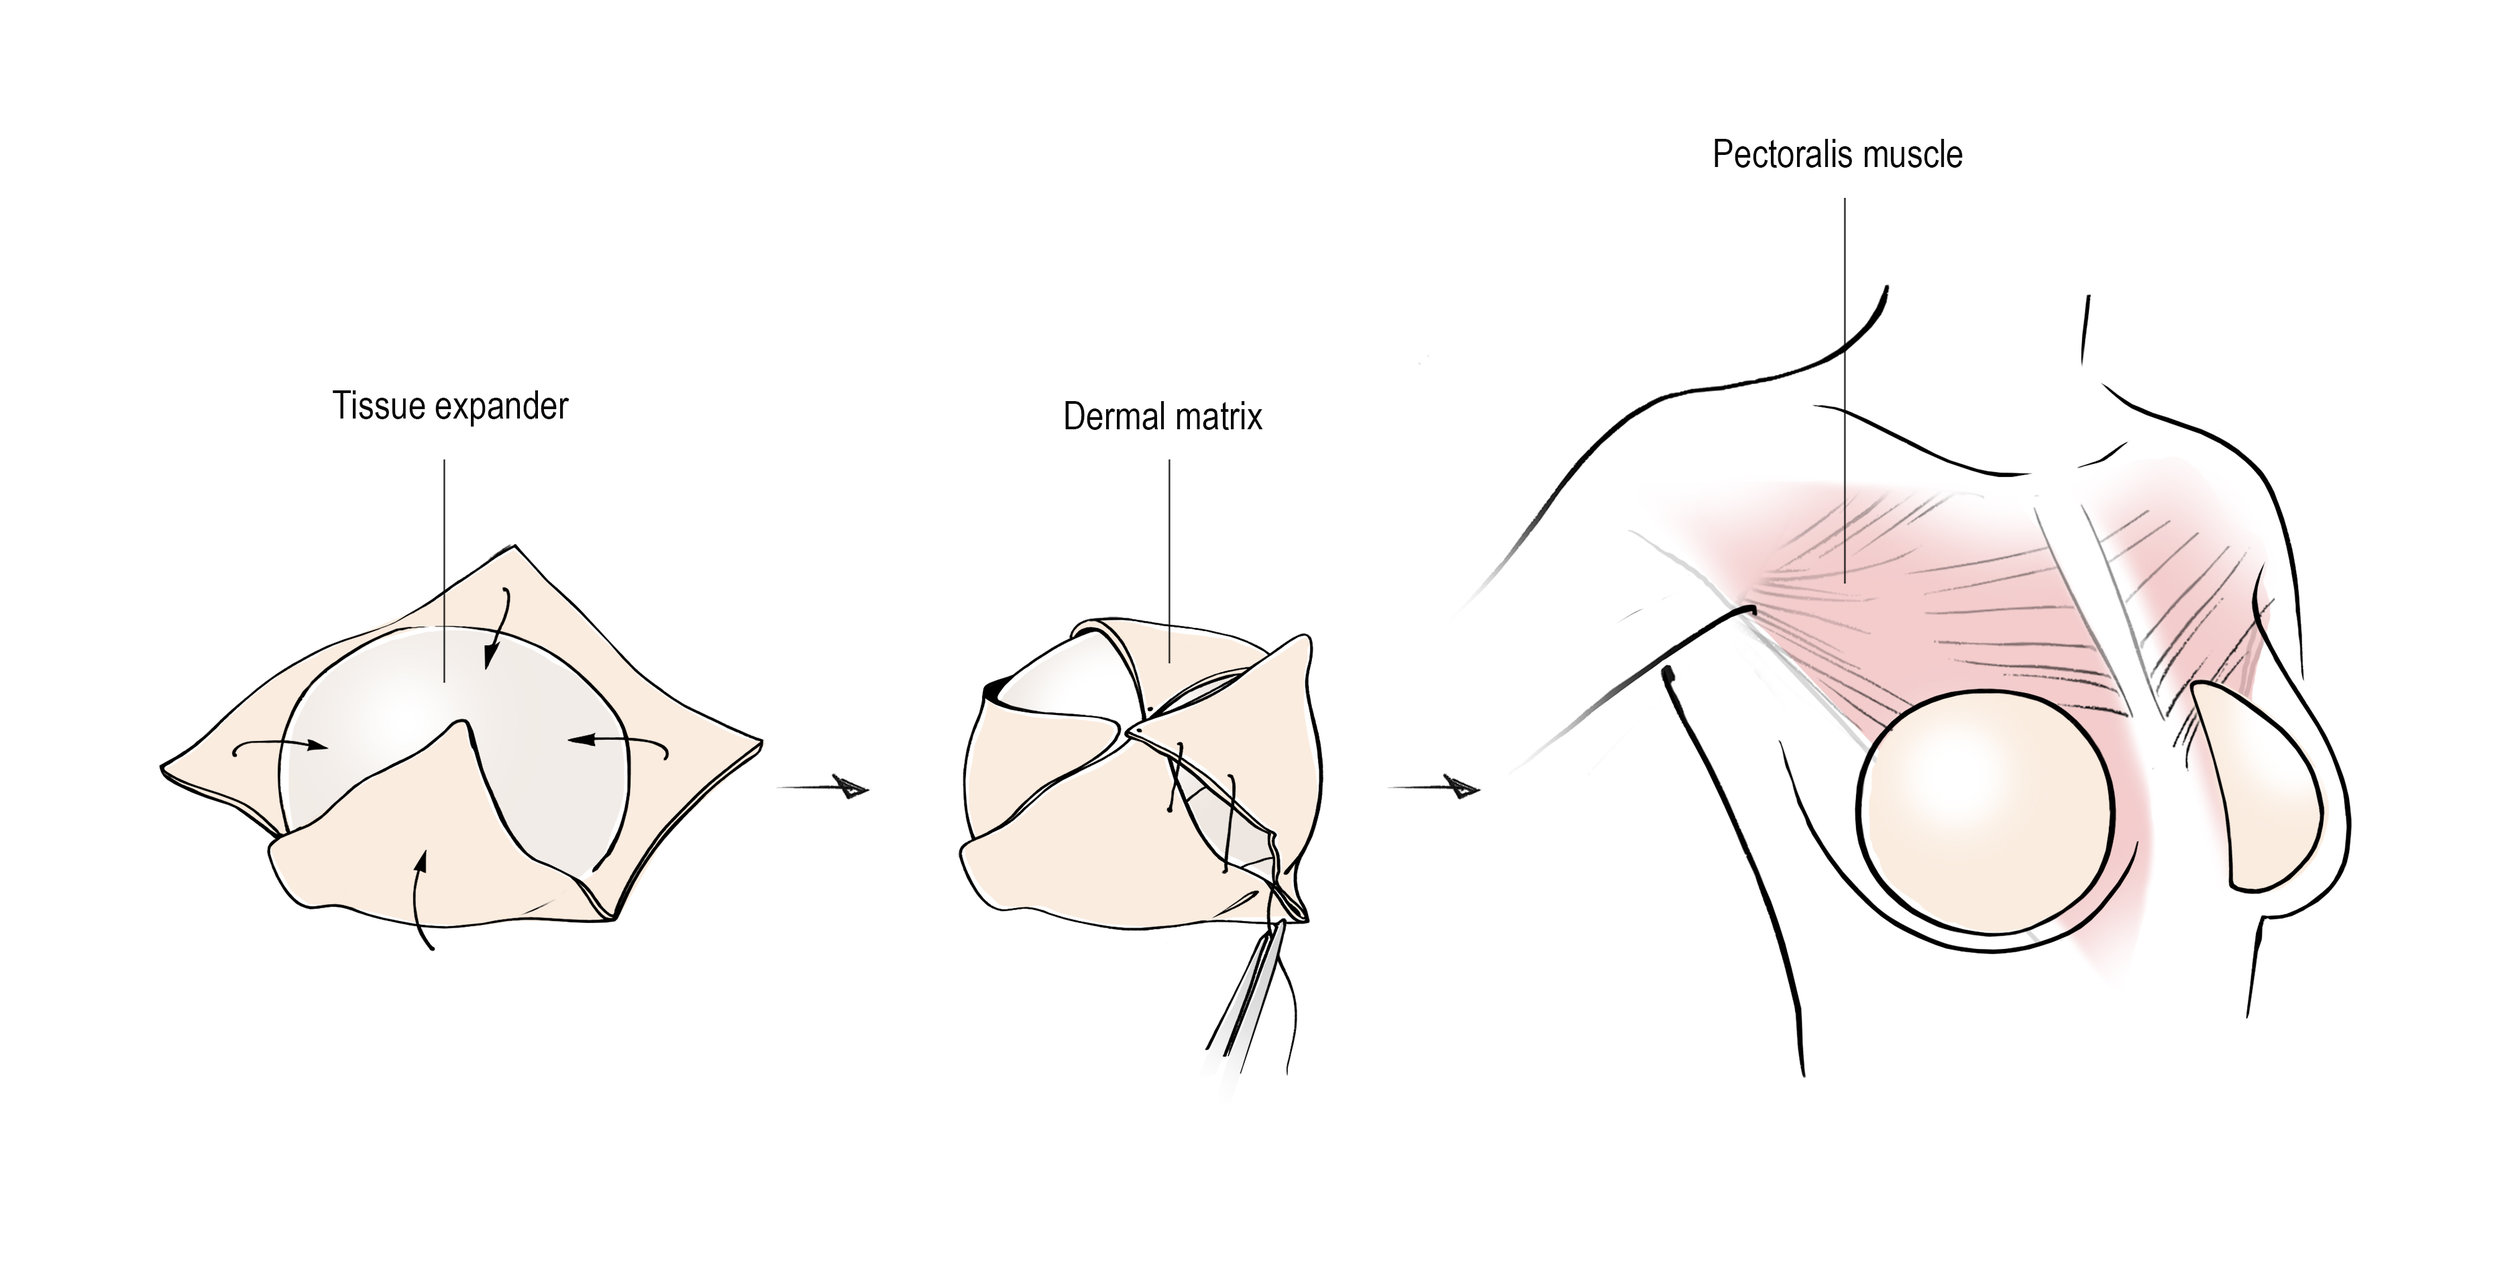 Prepectoral Tissue Expander Placement